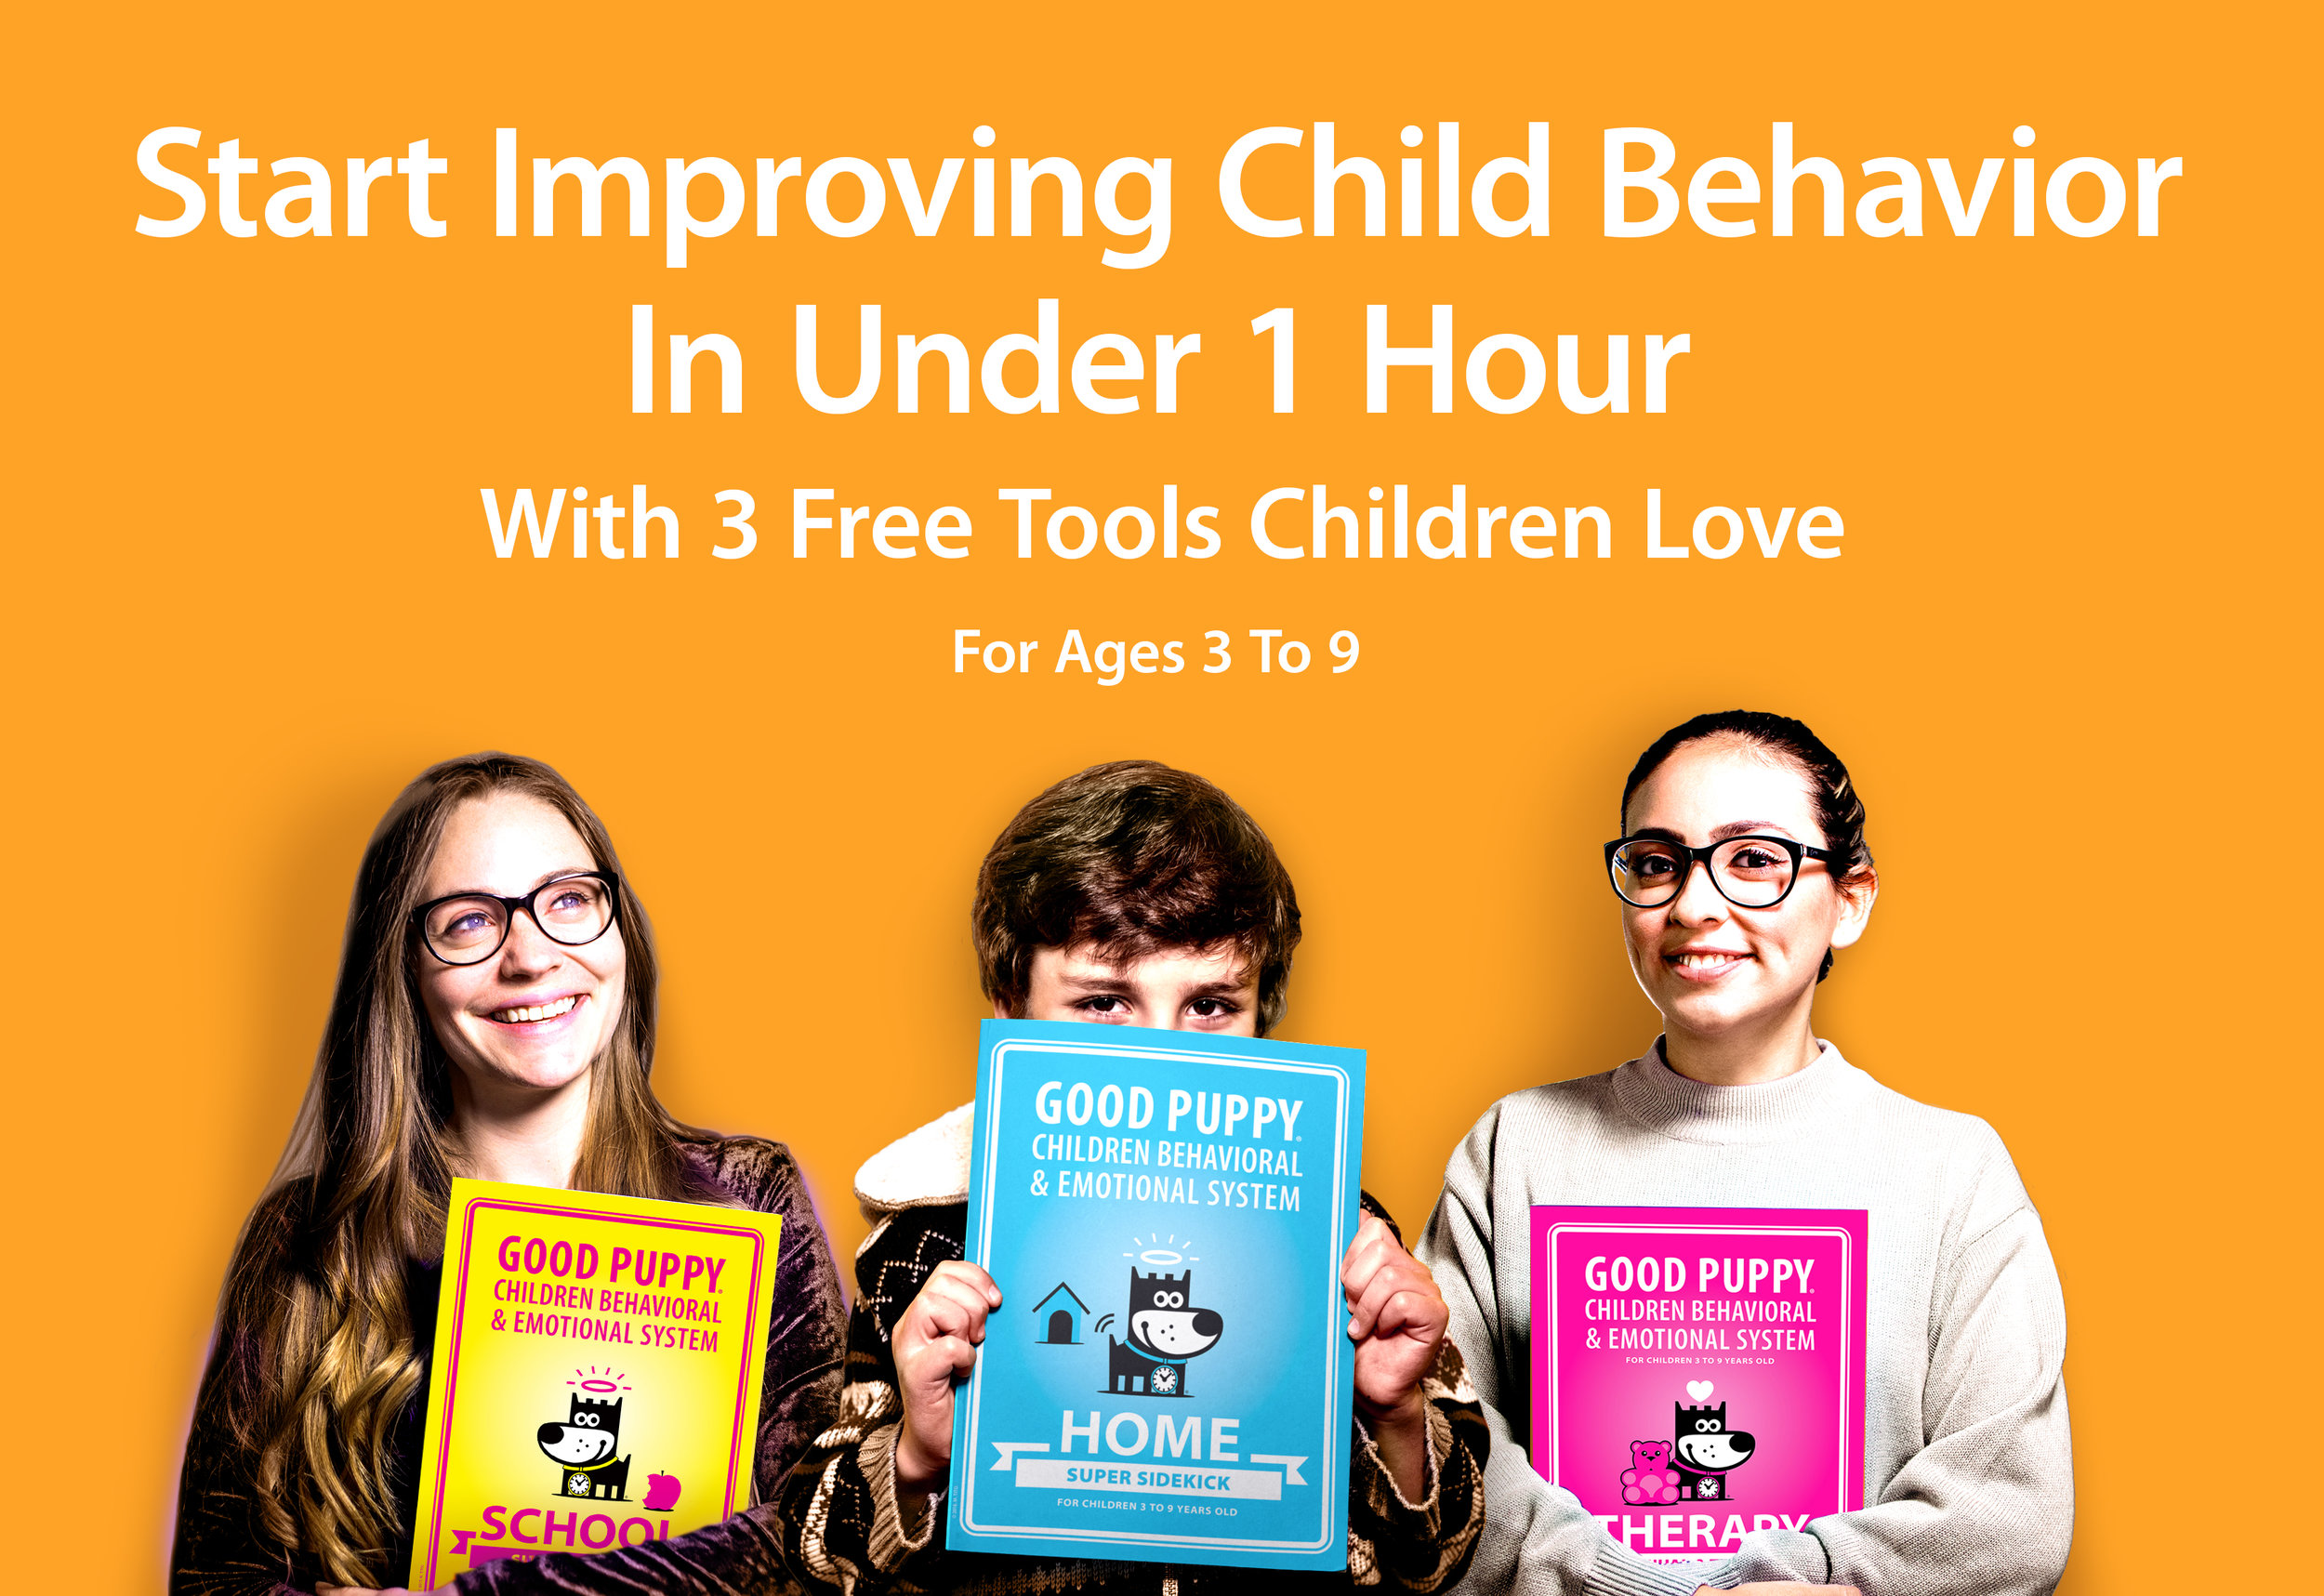 Child-Cognitive-Behavioral-All-Toolkit-G.jpg